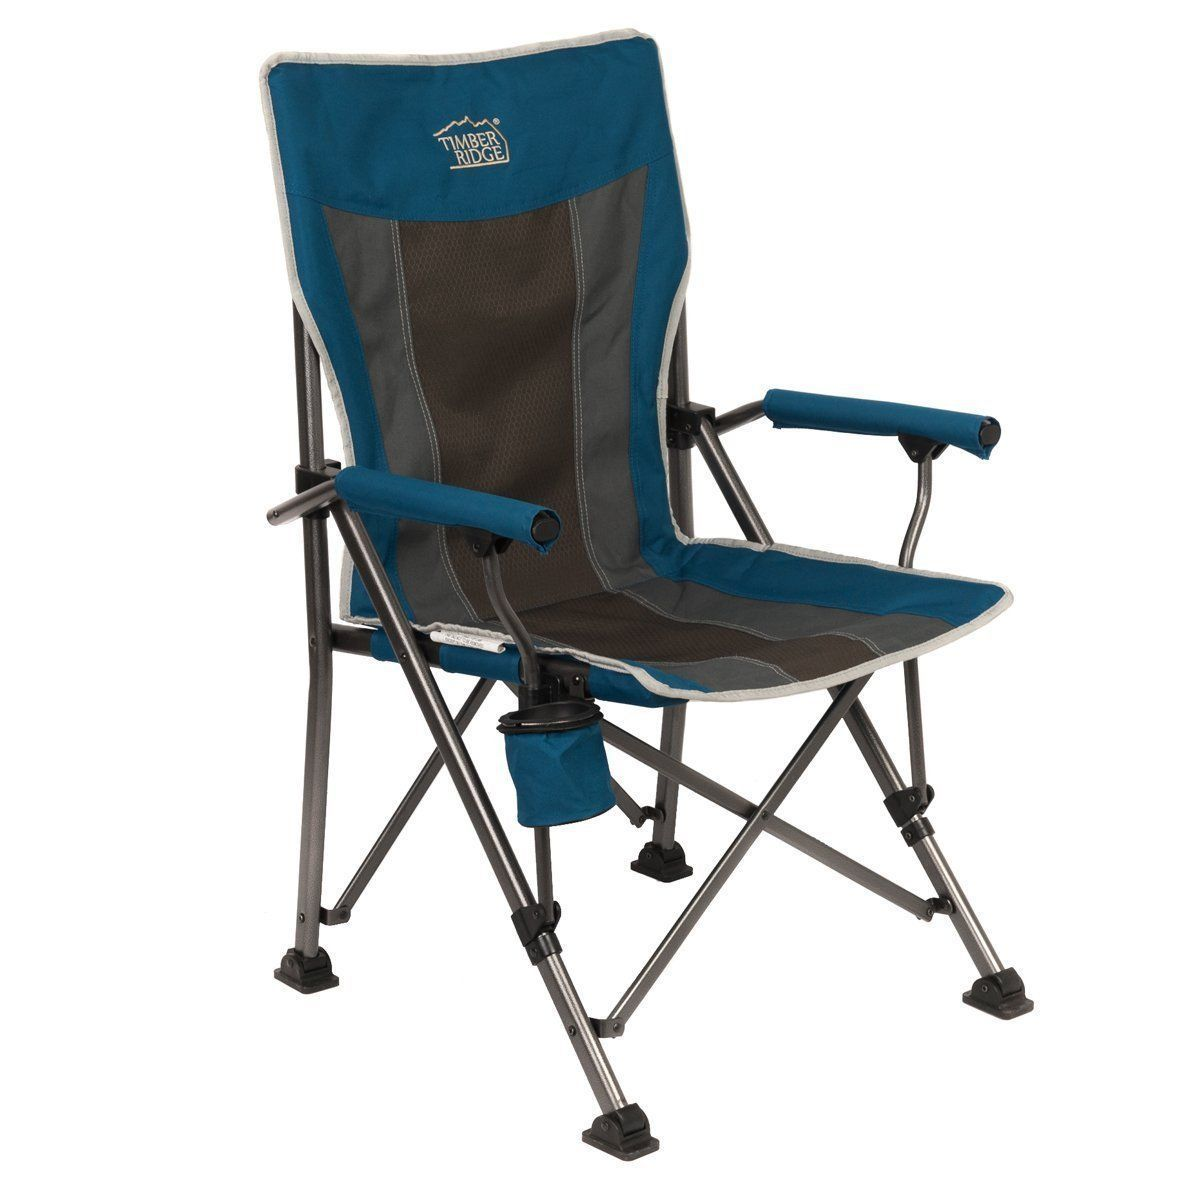 timber ridge outdoor chairs baby chair target timberridge smooth glide lightweight padded folding